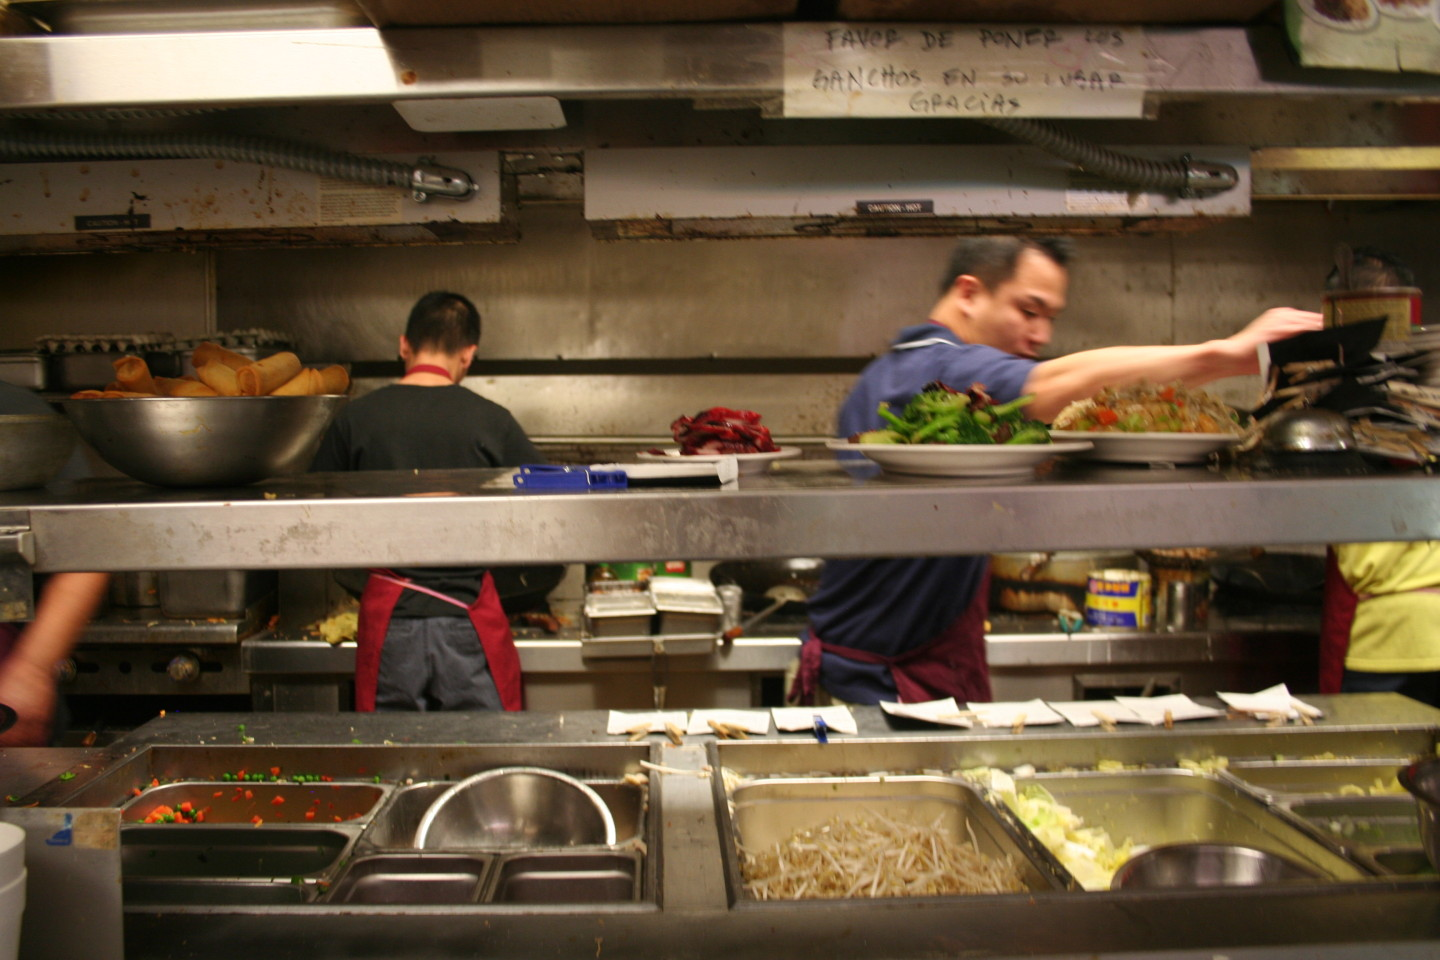 In the Fortune Garden kitchen, chefs speak to each other in Cantonese, and waiters give orders in Spanish. Vickie Ly/KQED